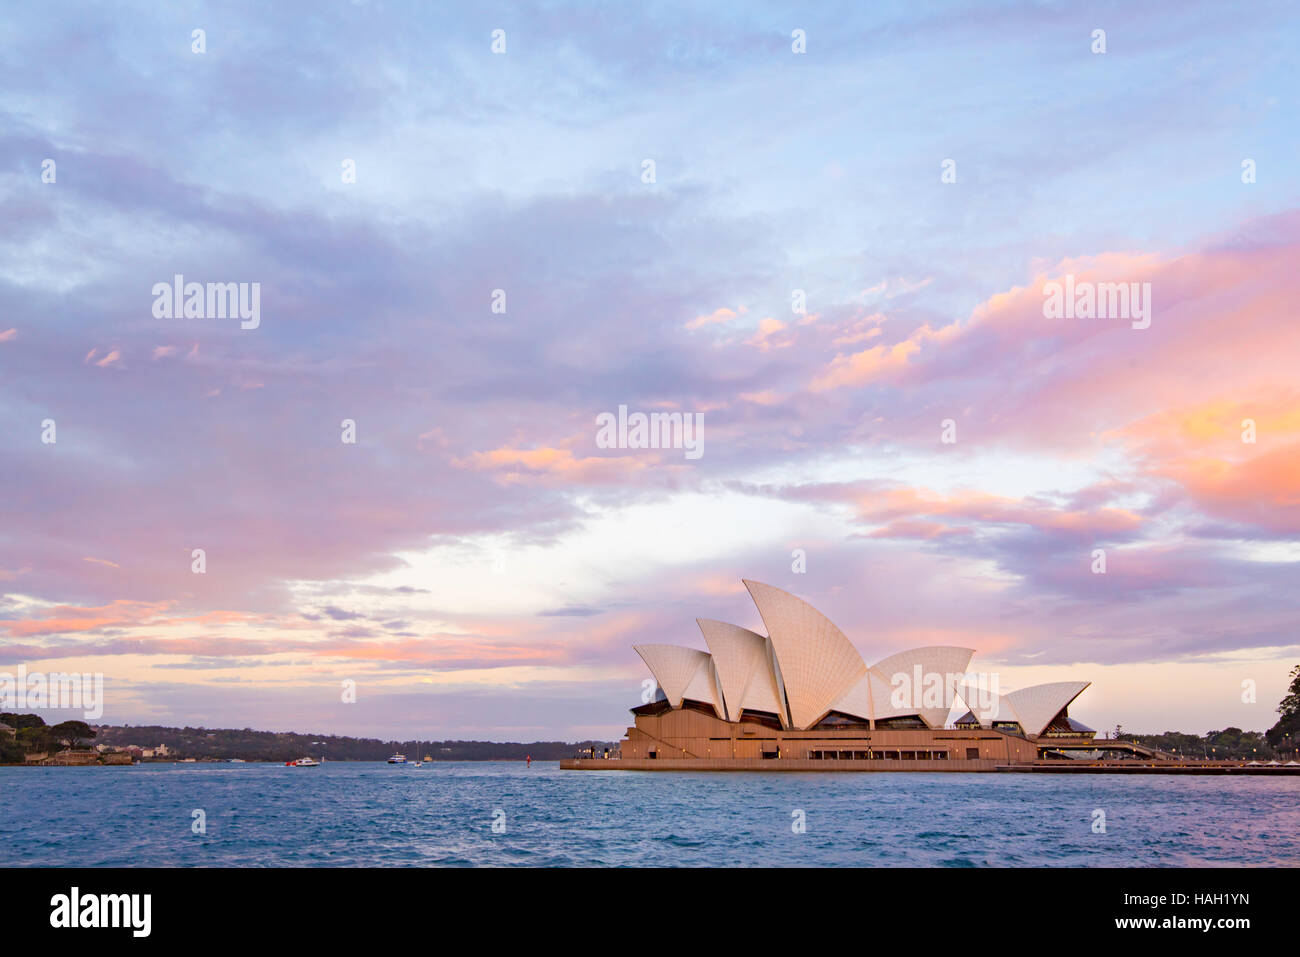 The Sydney Opera House, Australia at dusk - Stock Image